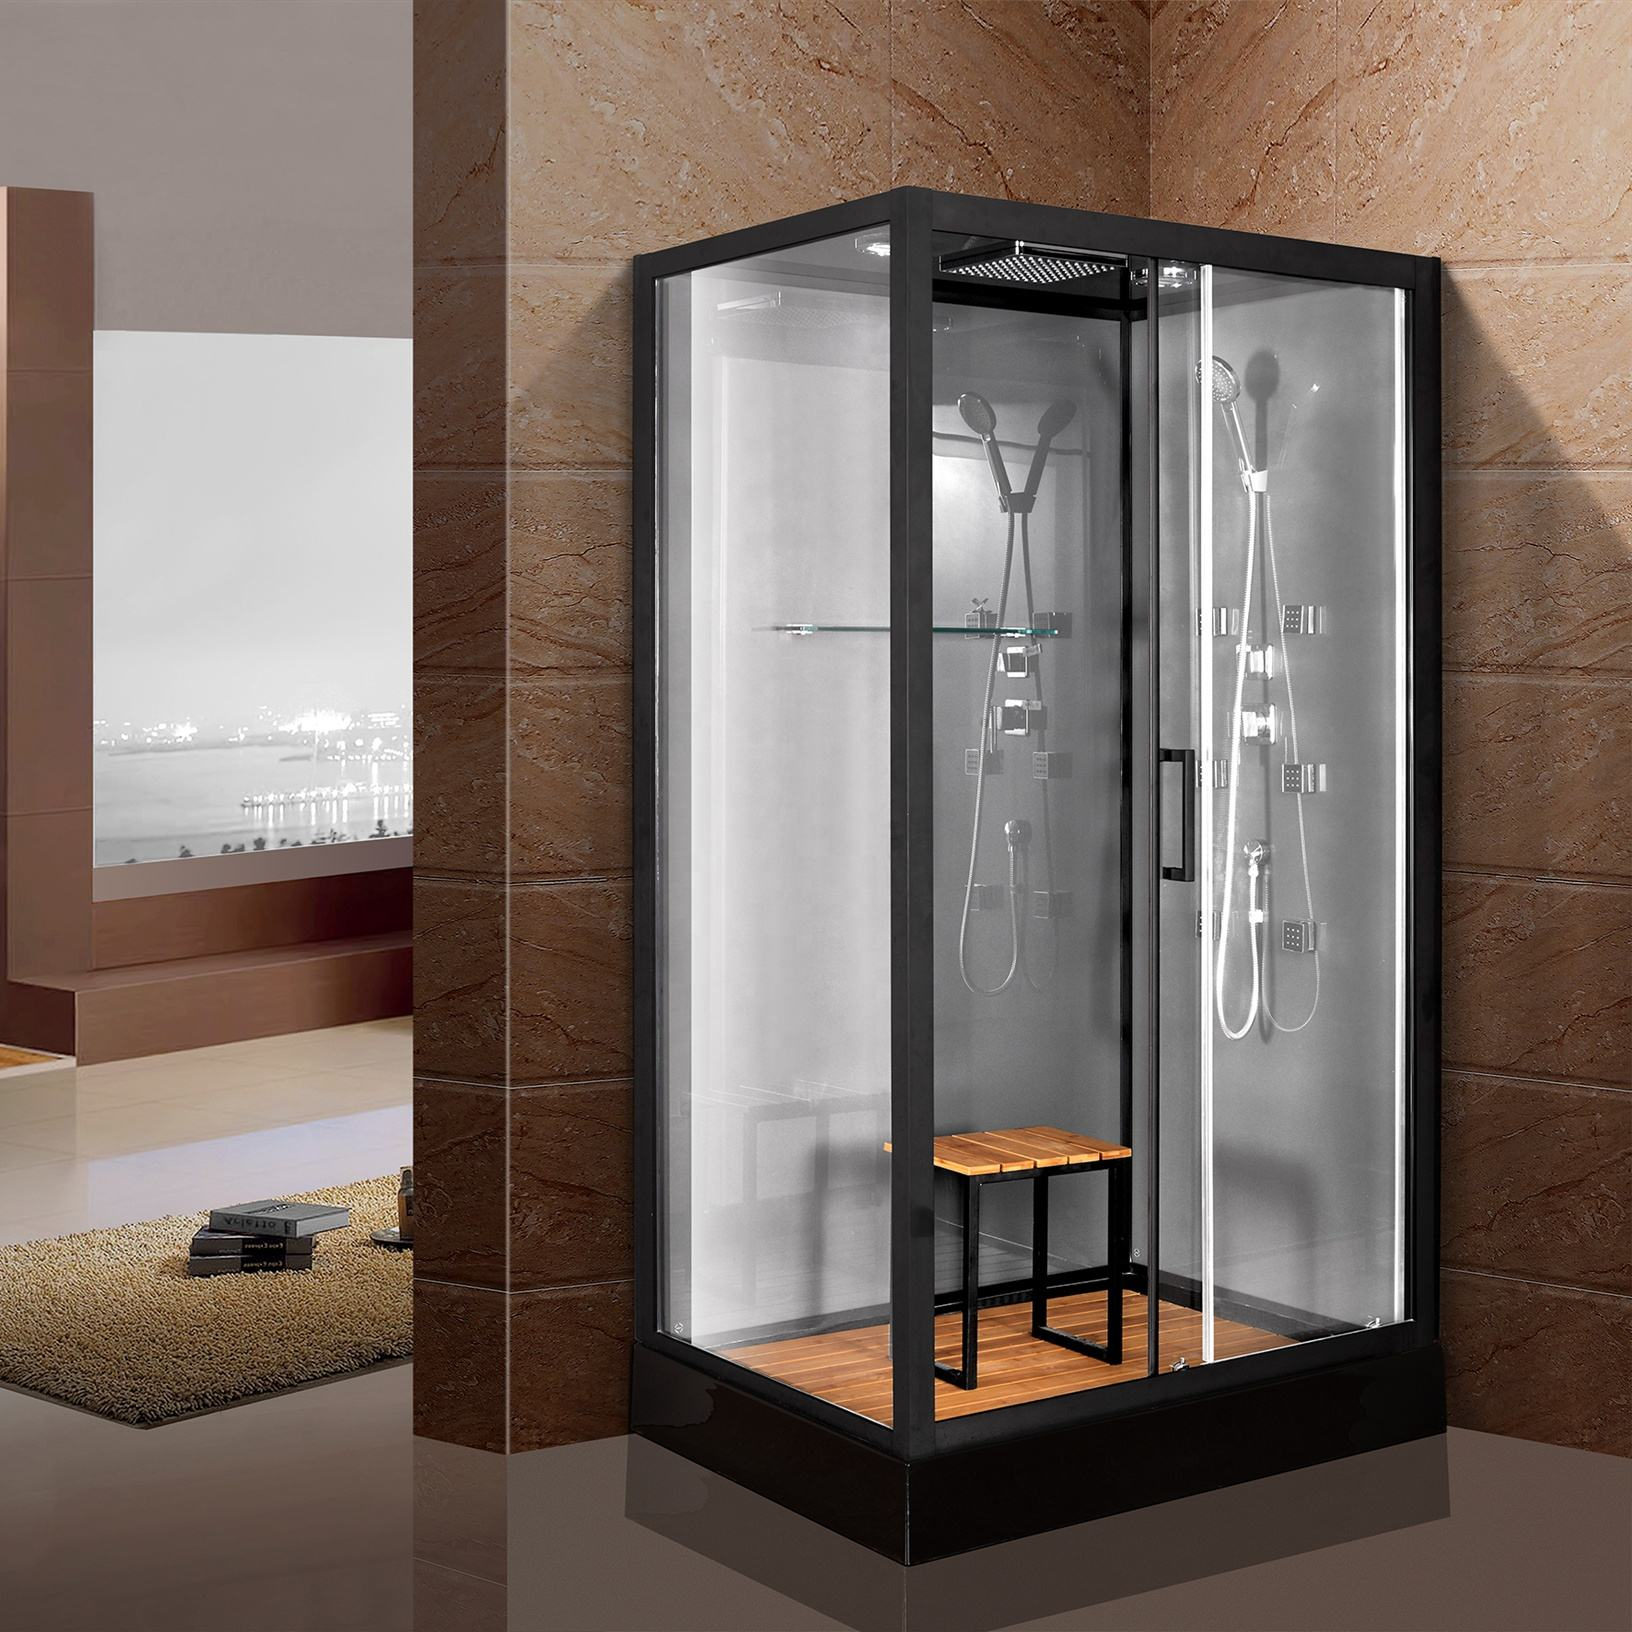 China black aluminum steam luxury hydro massage tempered glass shower room shower cabin in bathroom with seat